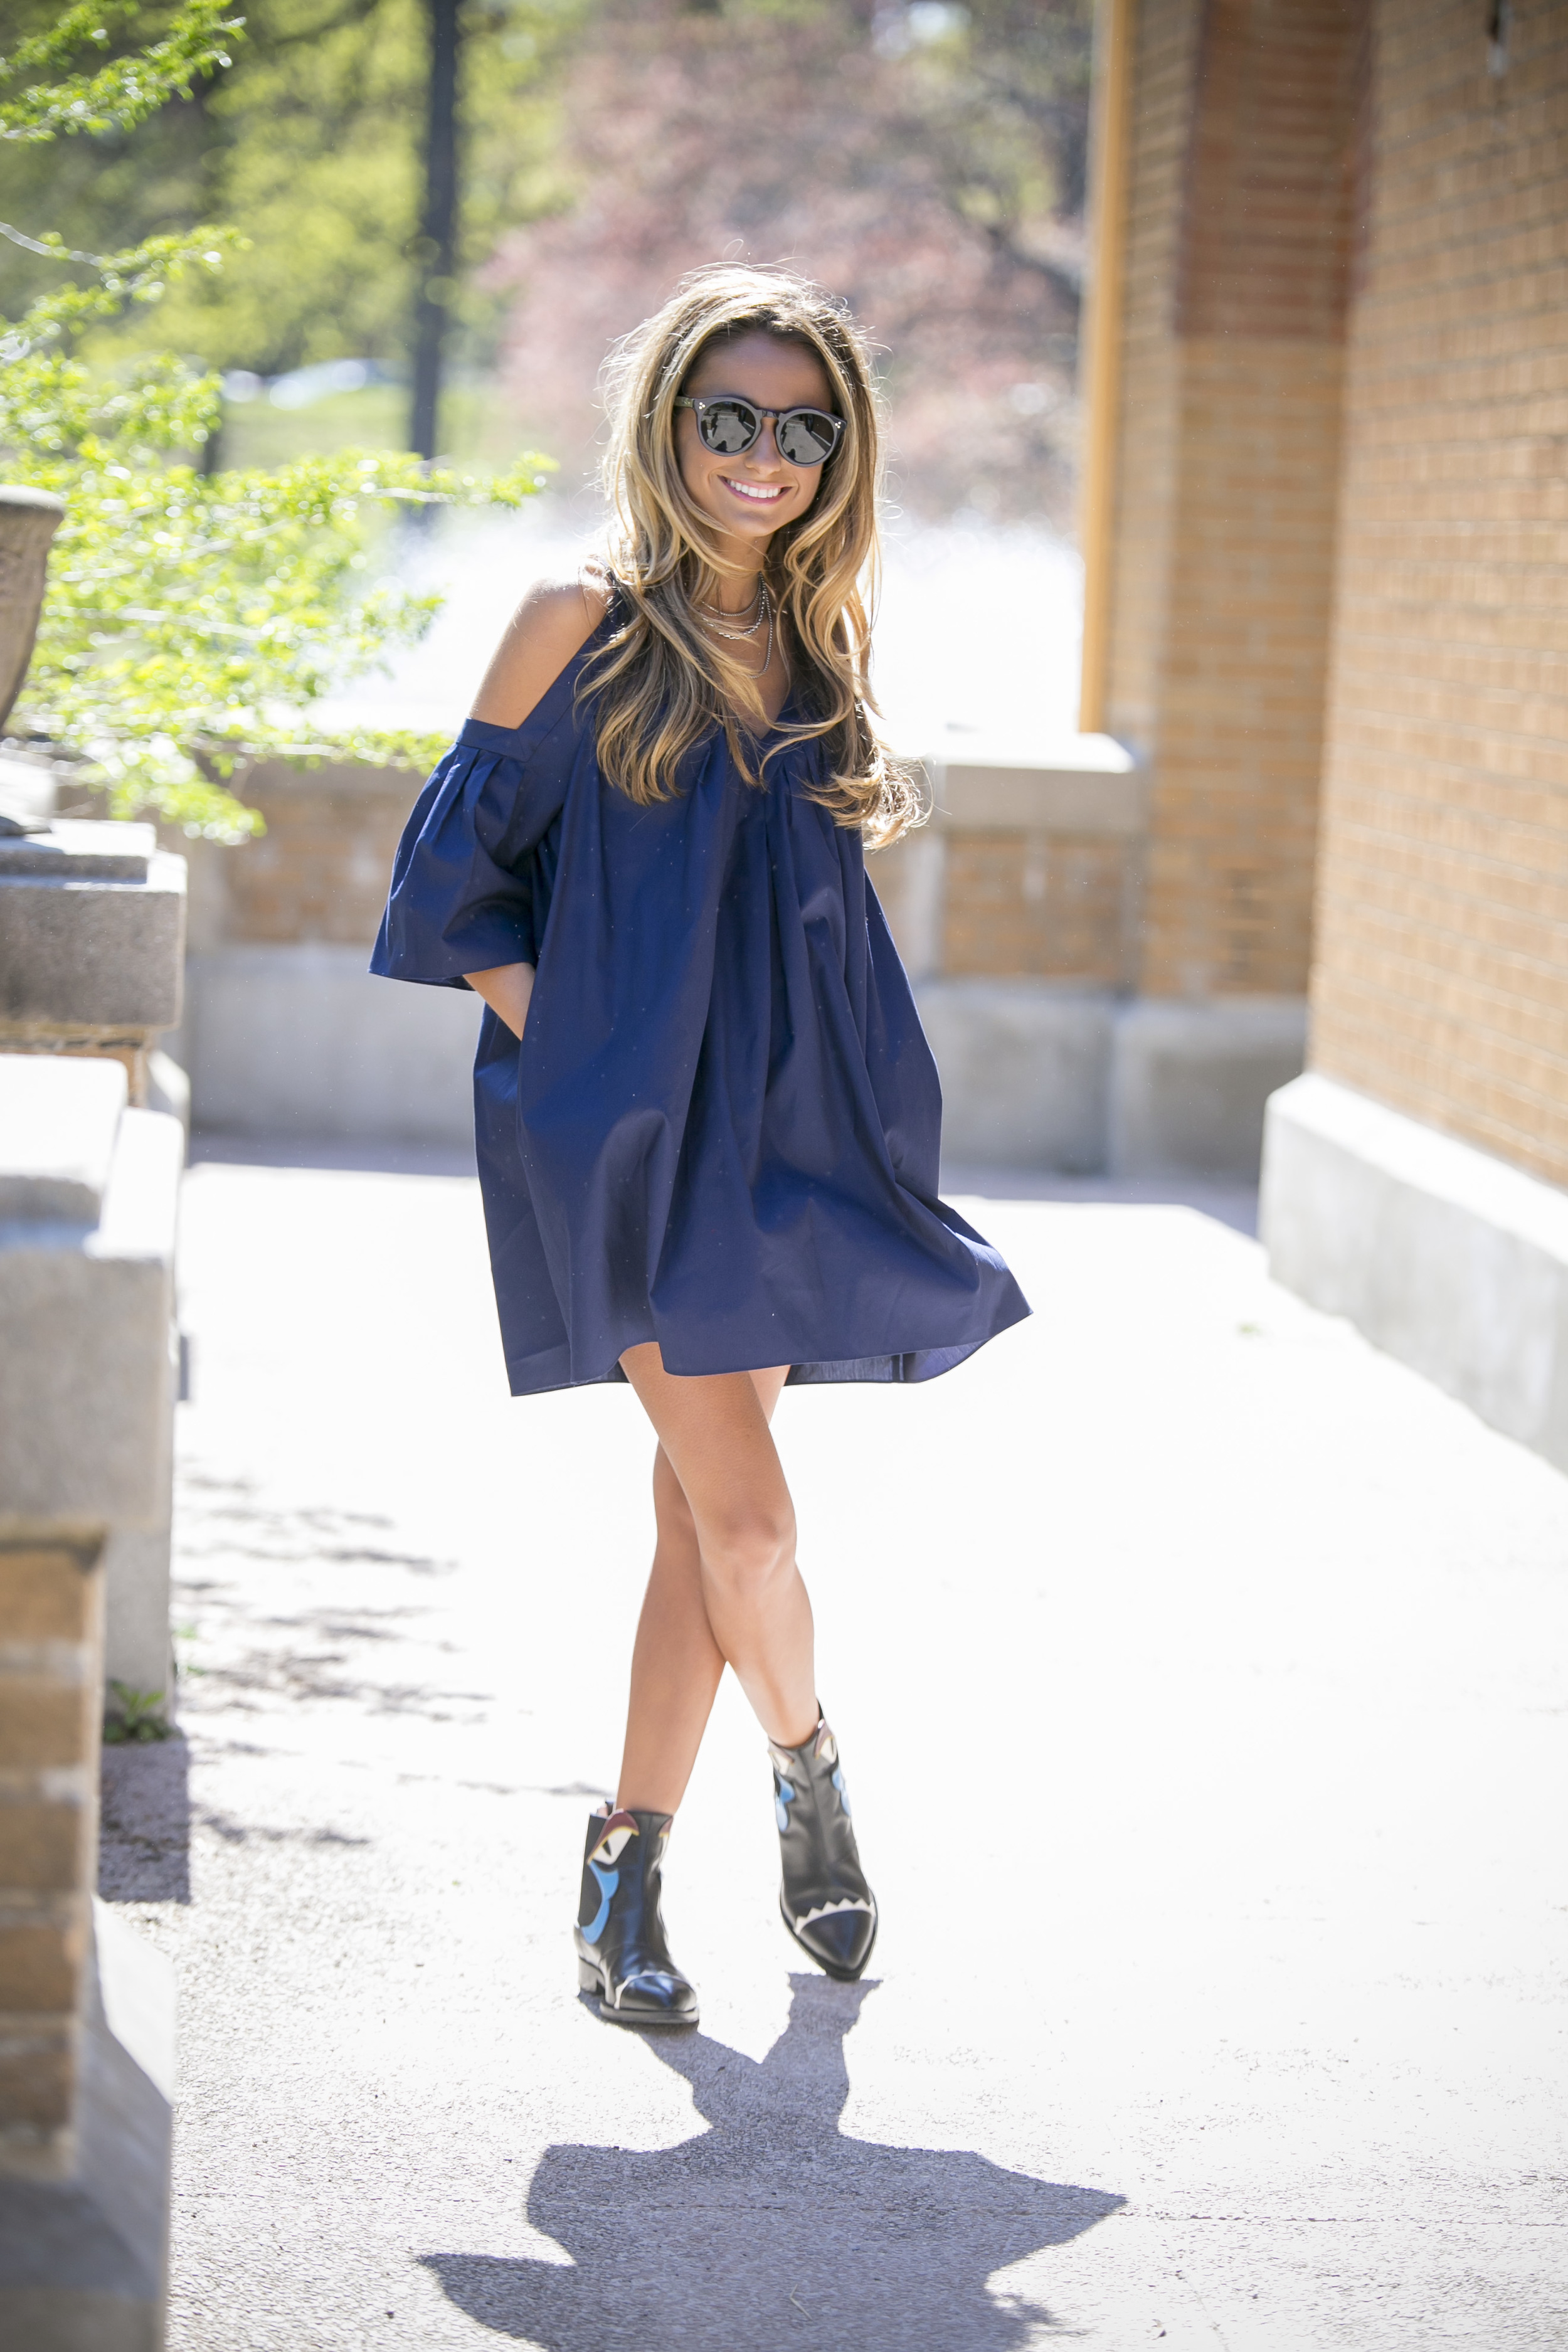 Rebecca Minkoff dress and Fendi booties worn by fashion blogger North of Manhattan